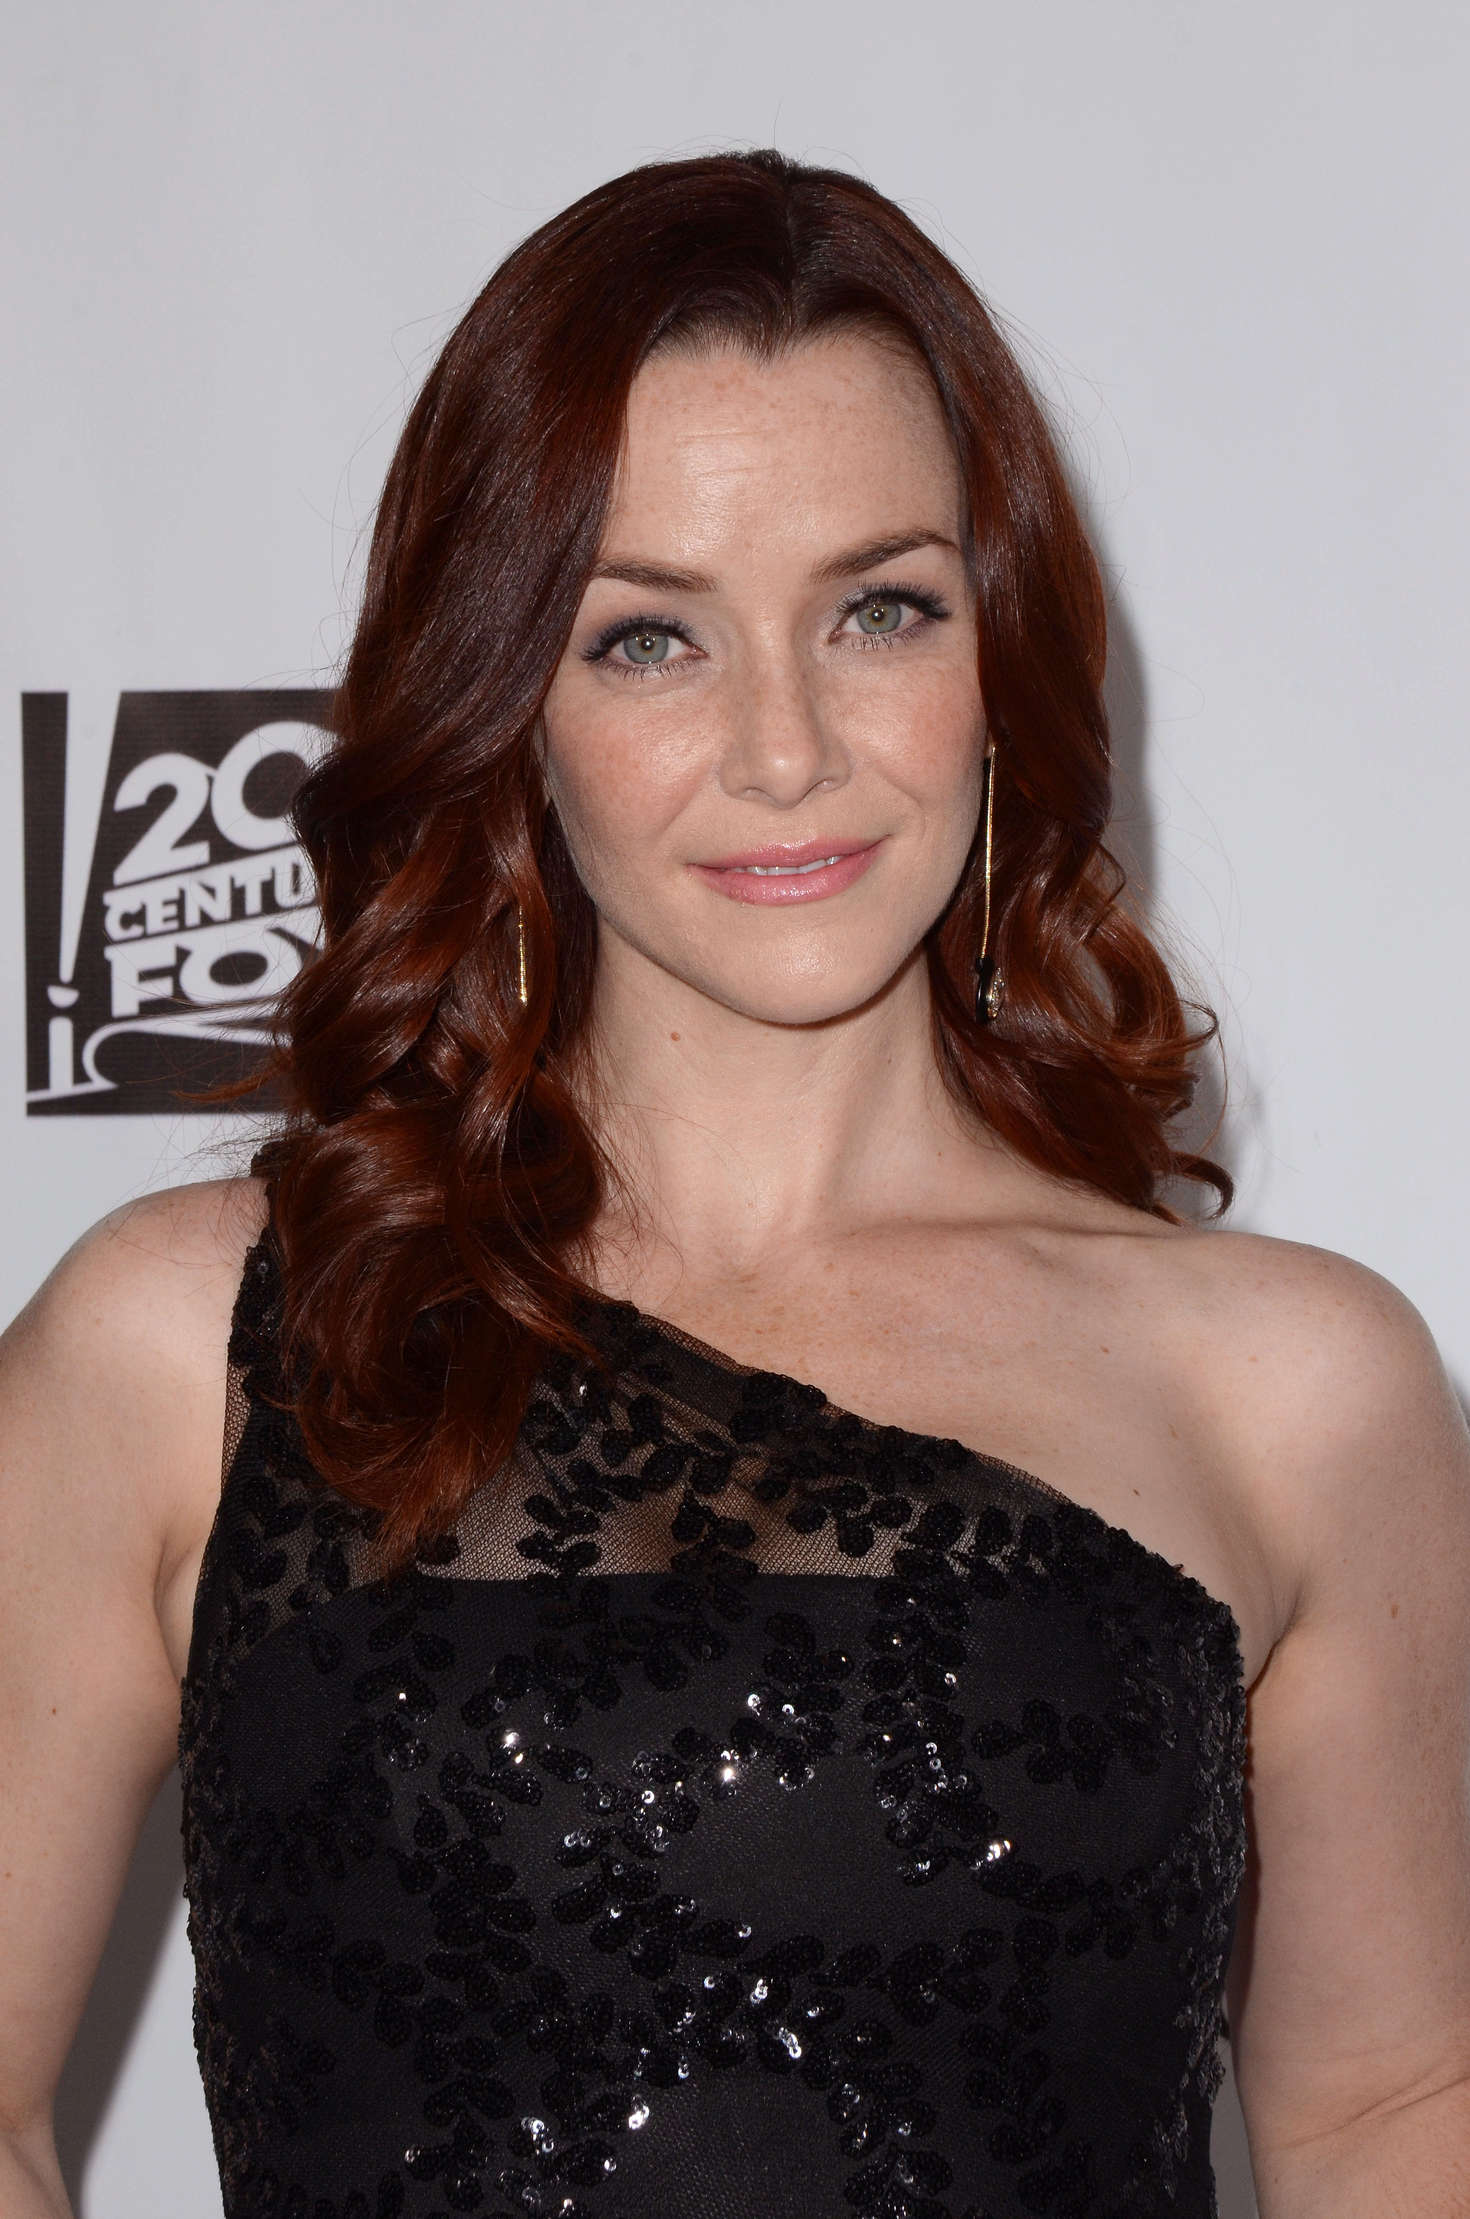 Annie Wersching Society of Camera Operators Lifetime Achievement Awards in Los Angeles